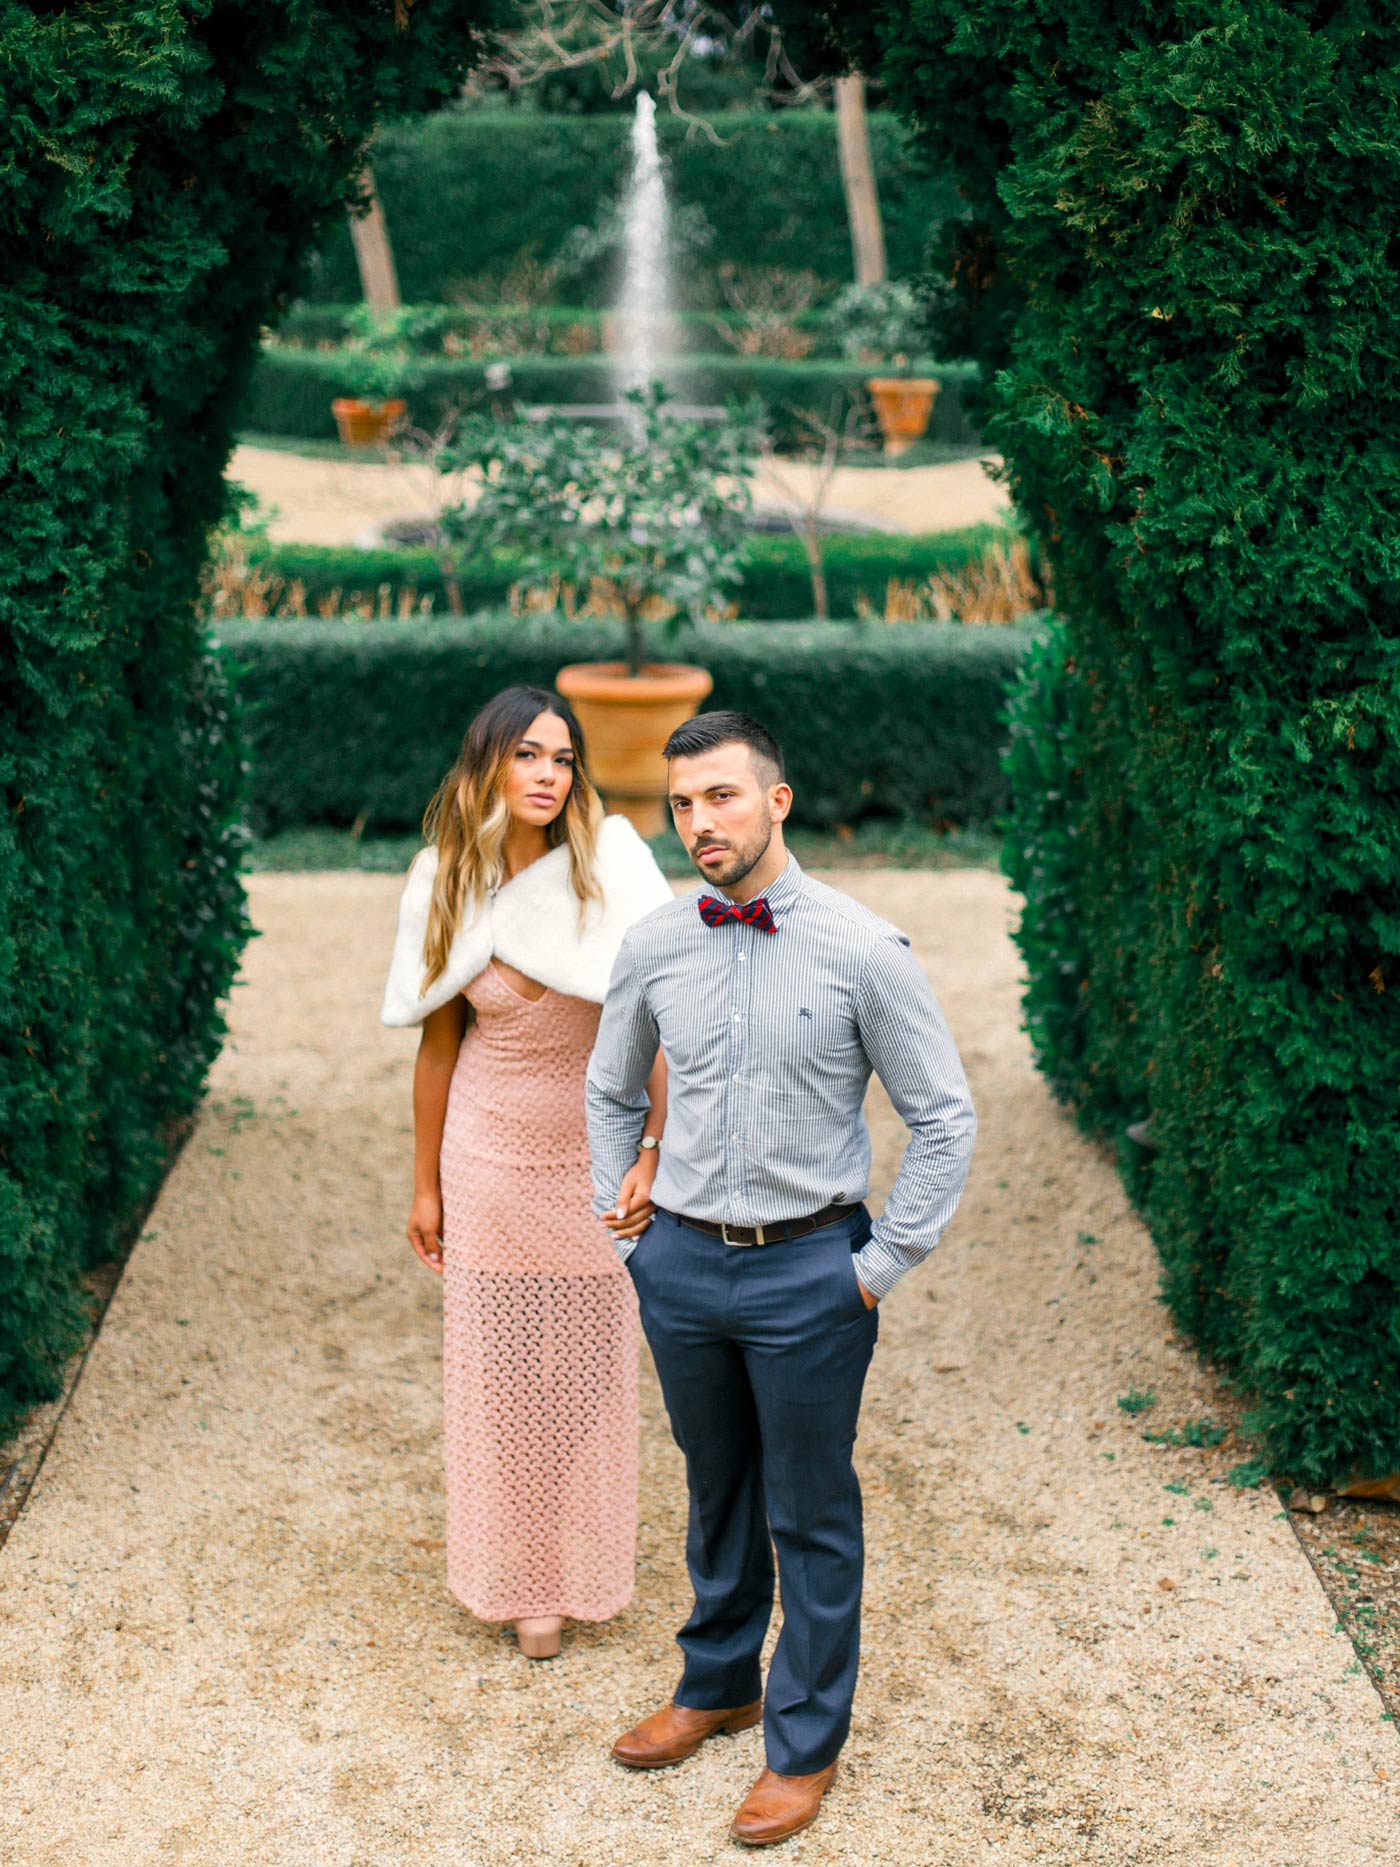 Chateau St Jean Engagement Photography